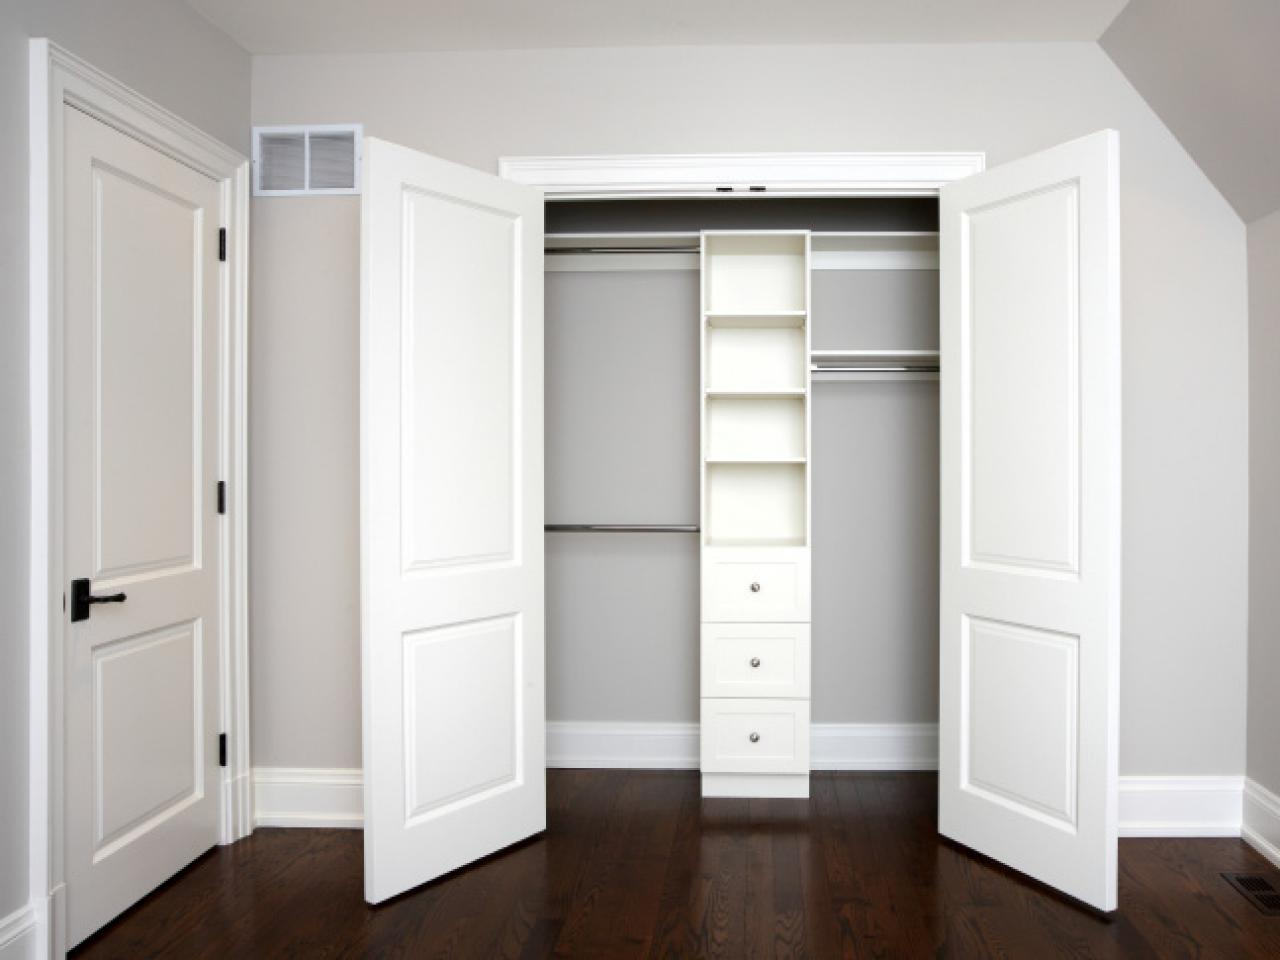 Sliding closet doors are unique